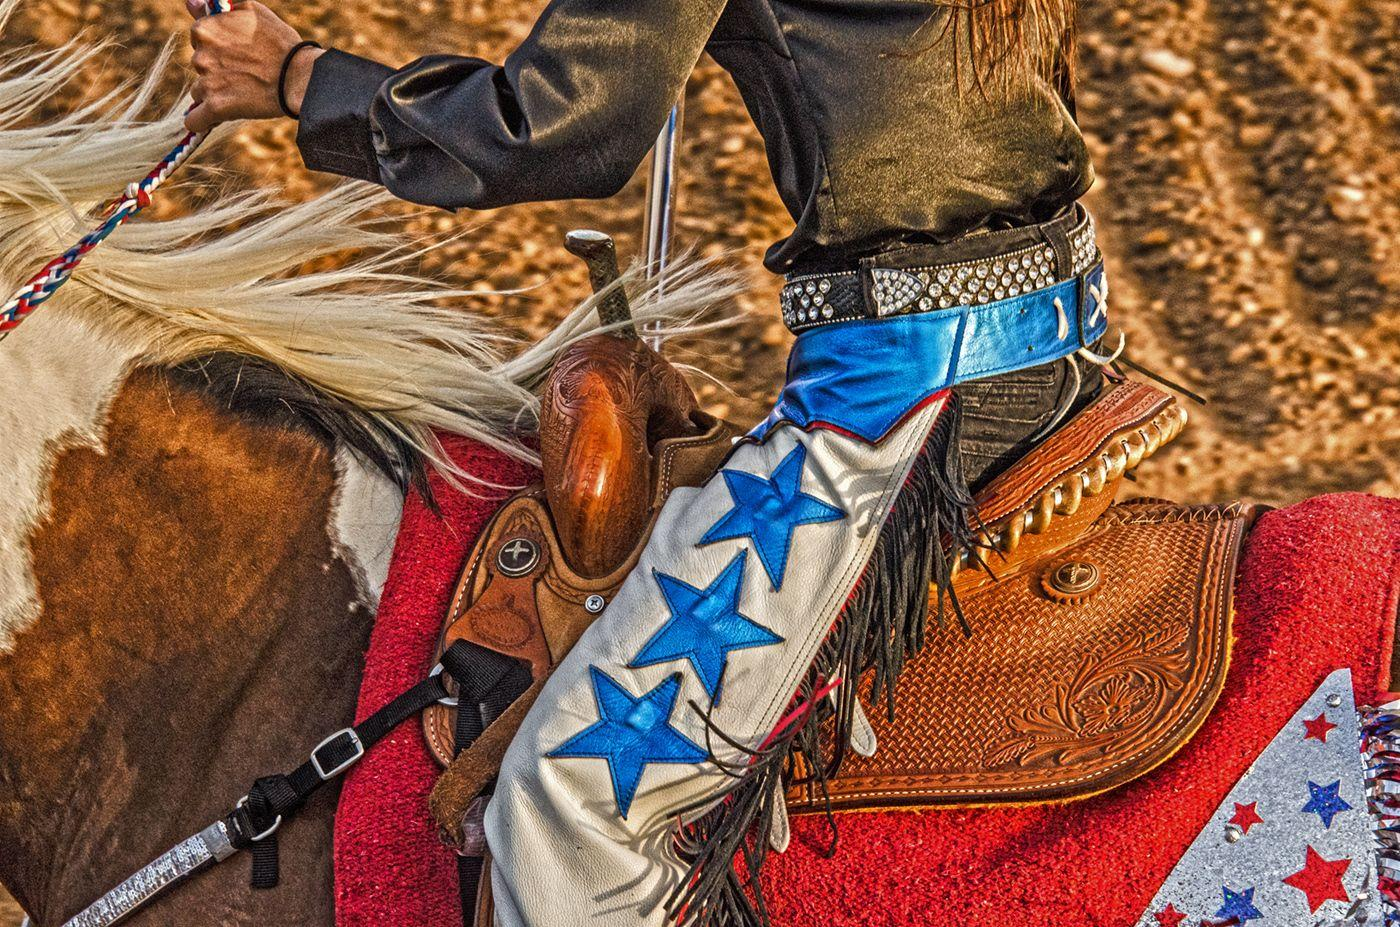 Star Saddle - Red, white & blue saddle and chaps, Texas rodeo rider and horse